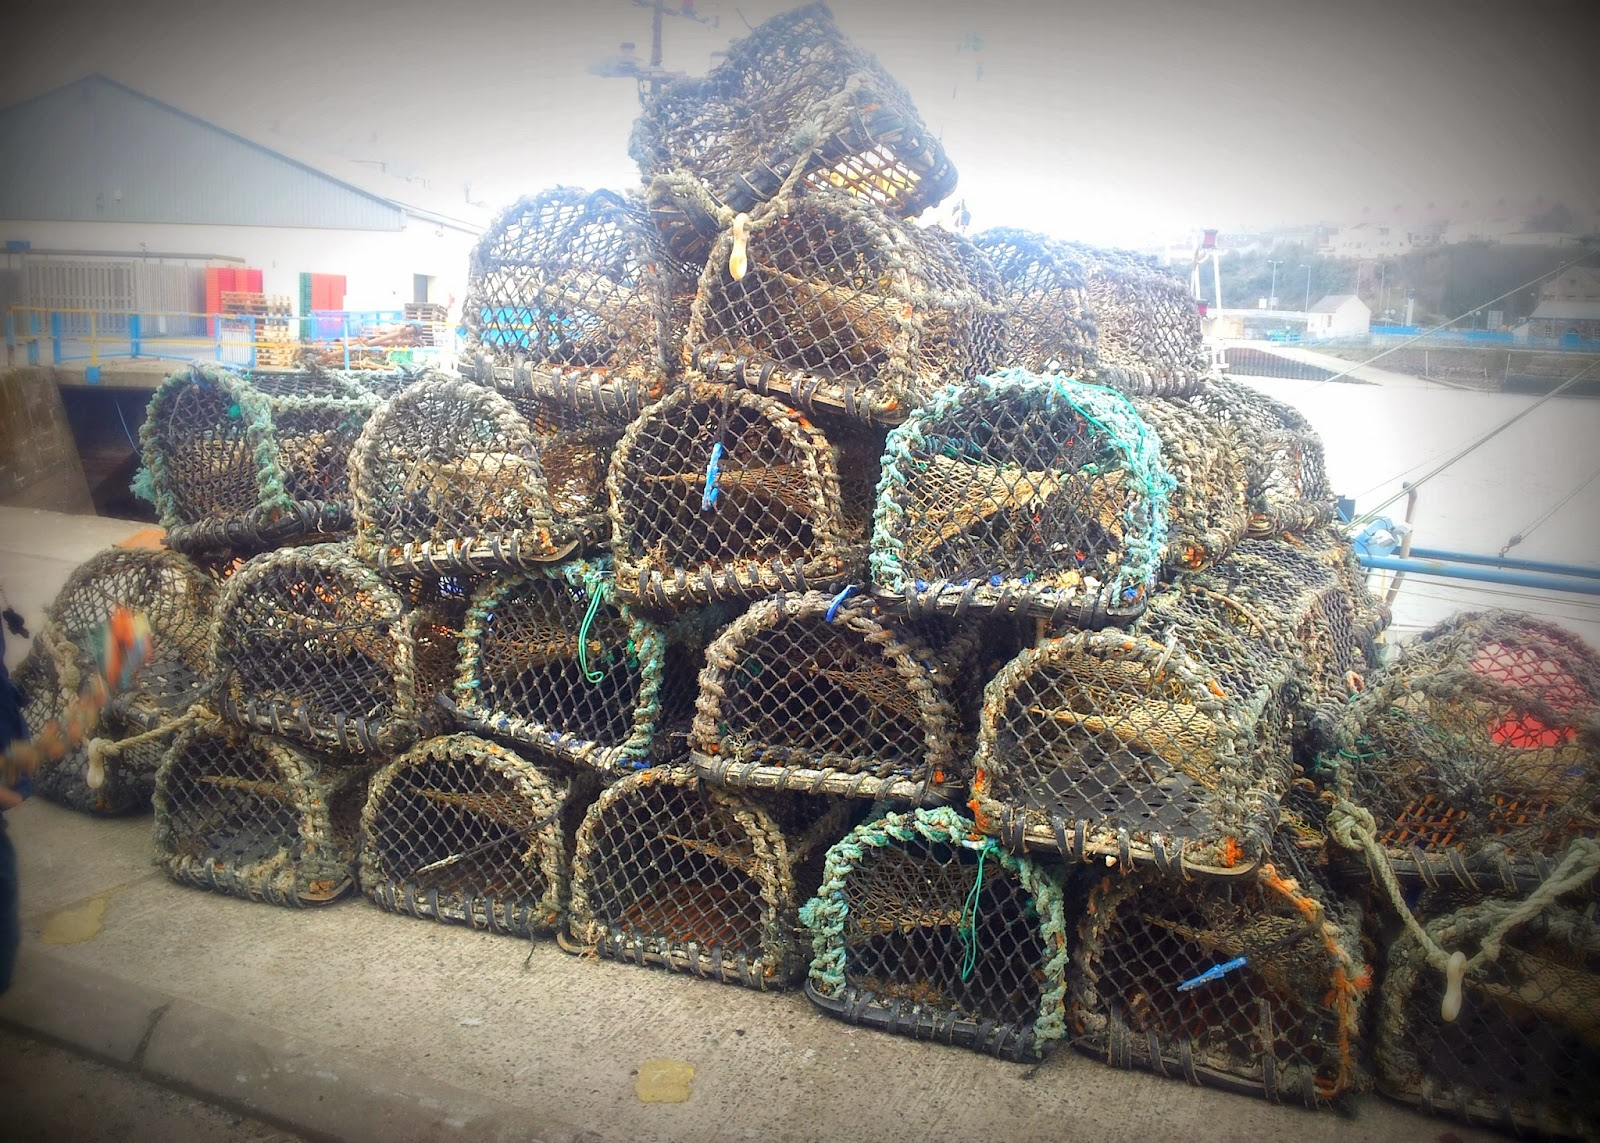 , Milford Haven:The Docks- Lobster Pots and Hermit Crabs